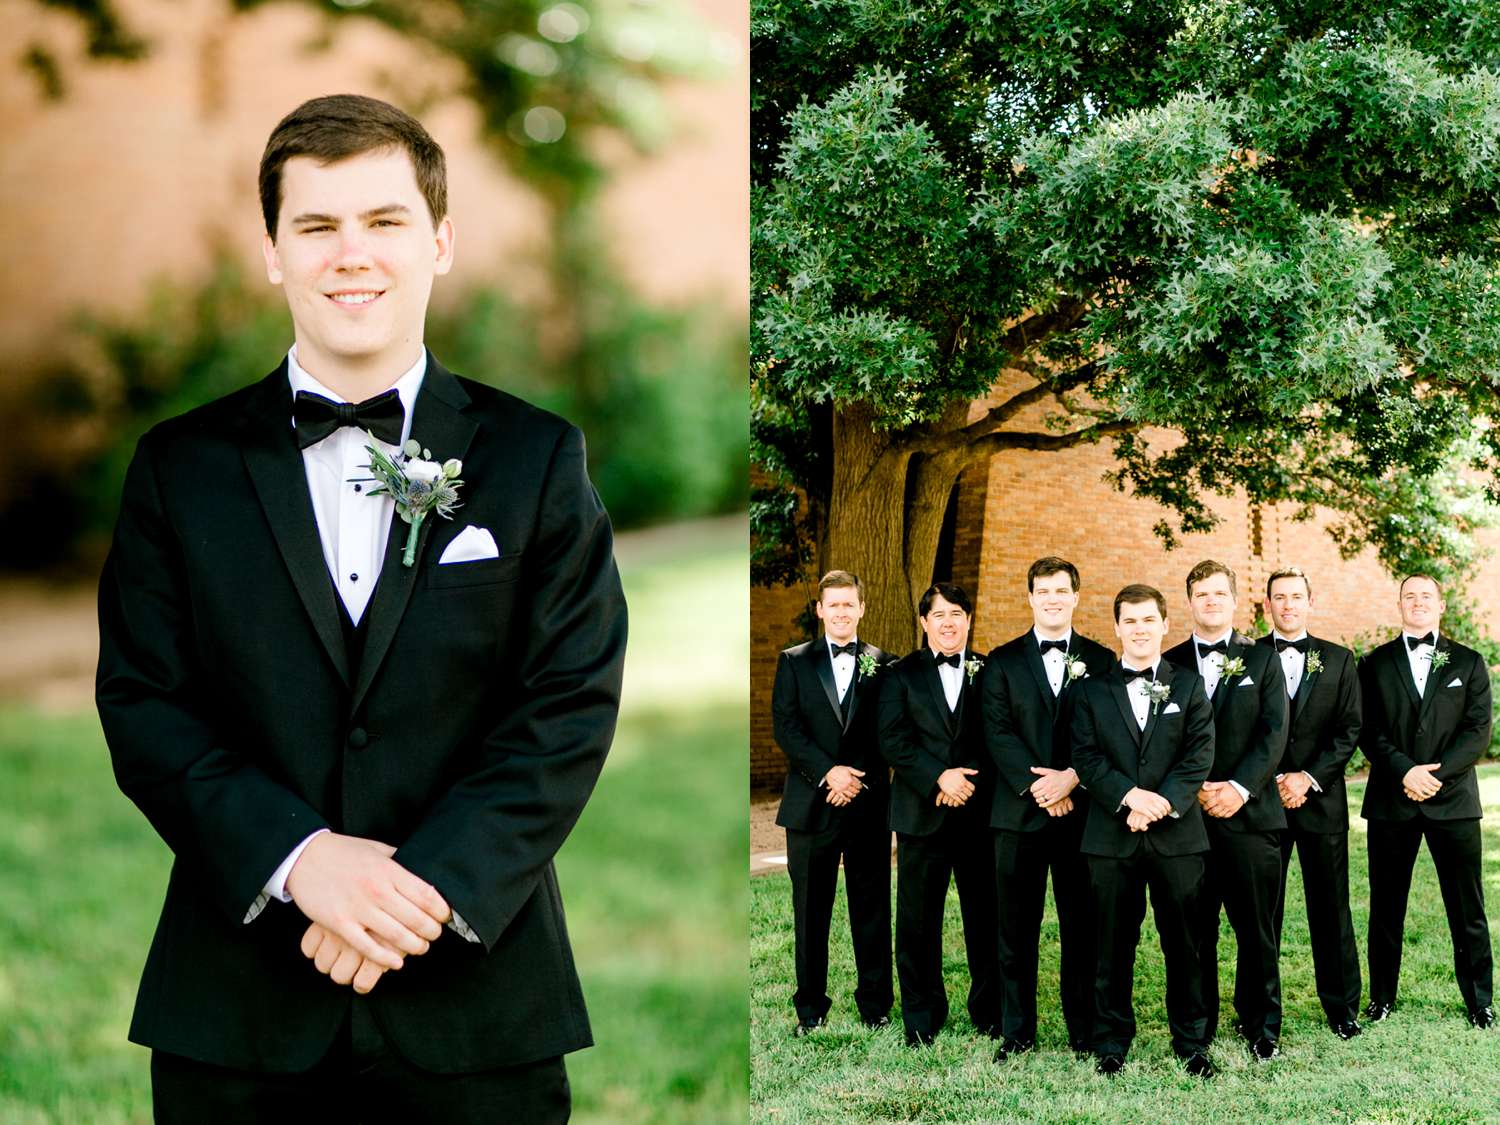 HANNAH+CRAIG+CHILDS+TEXAS+TECH+WEDDING+ALLEEJ+LUBBOCK+PHOTOGRAPHER_0025.jpg